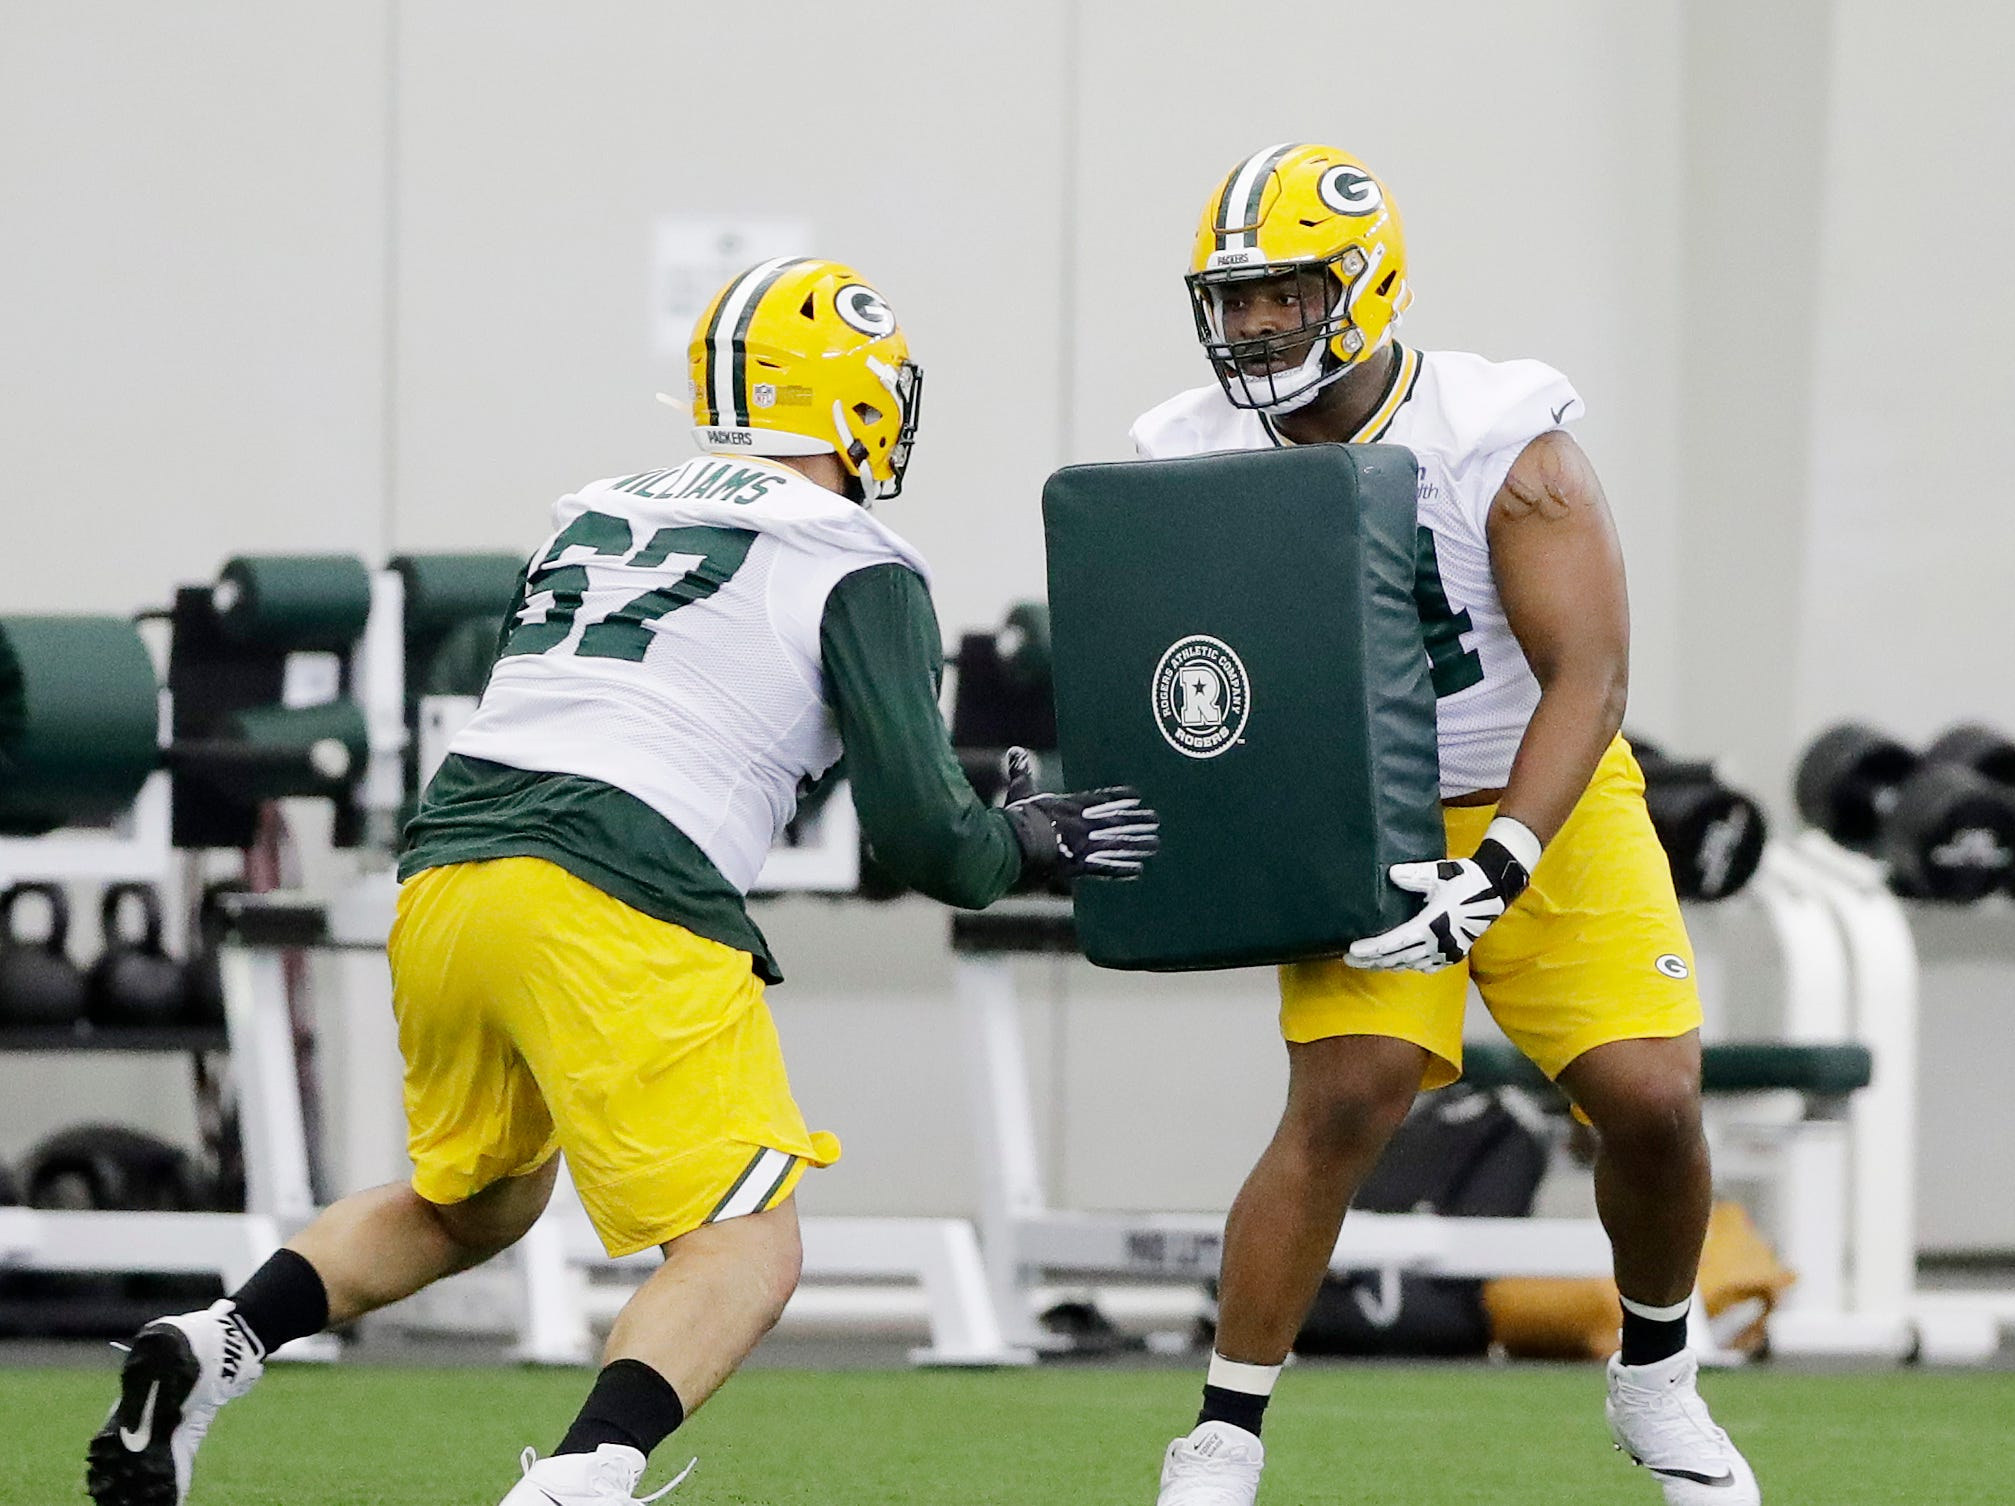 Green Bay Packers offensive lineman Elgton Jenkins (74) during practice at rookie minicamp at the Don Hutson Center on Friday, May 3, 2019 in Ashwaubenon, Wis.Adam Wesley/USA TODAY NETWORK-Wis